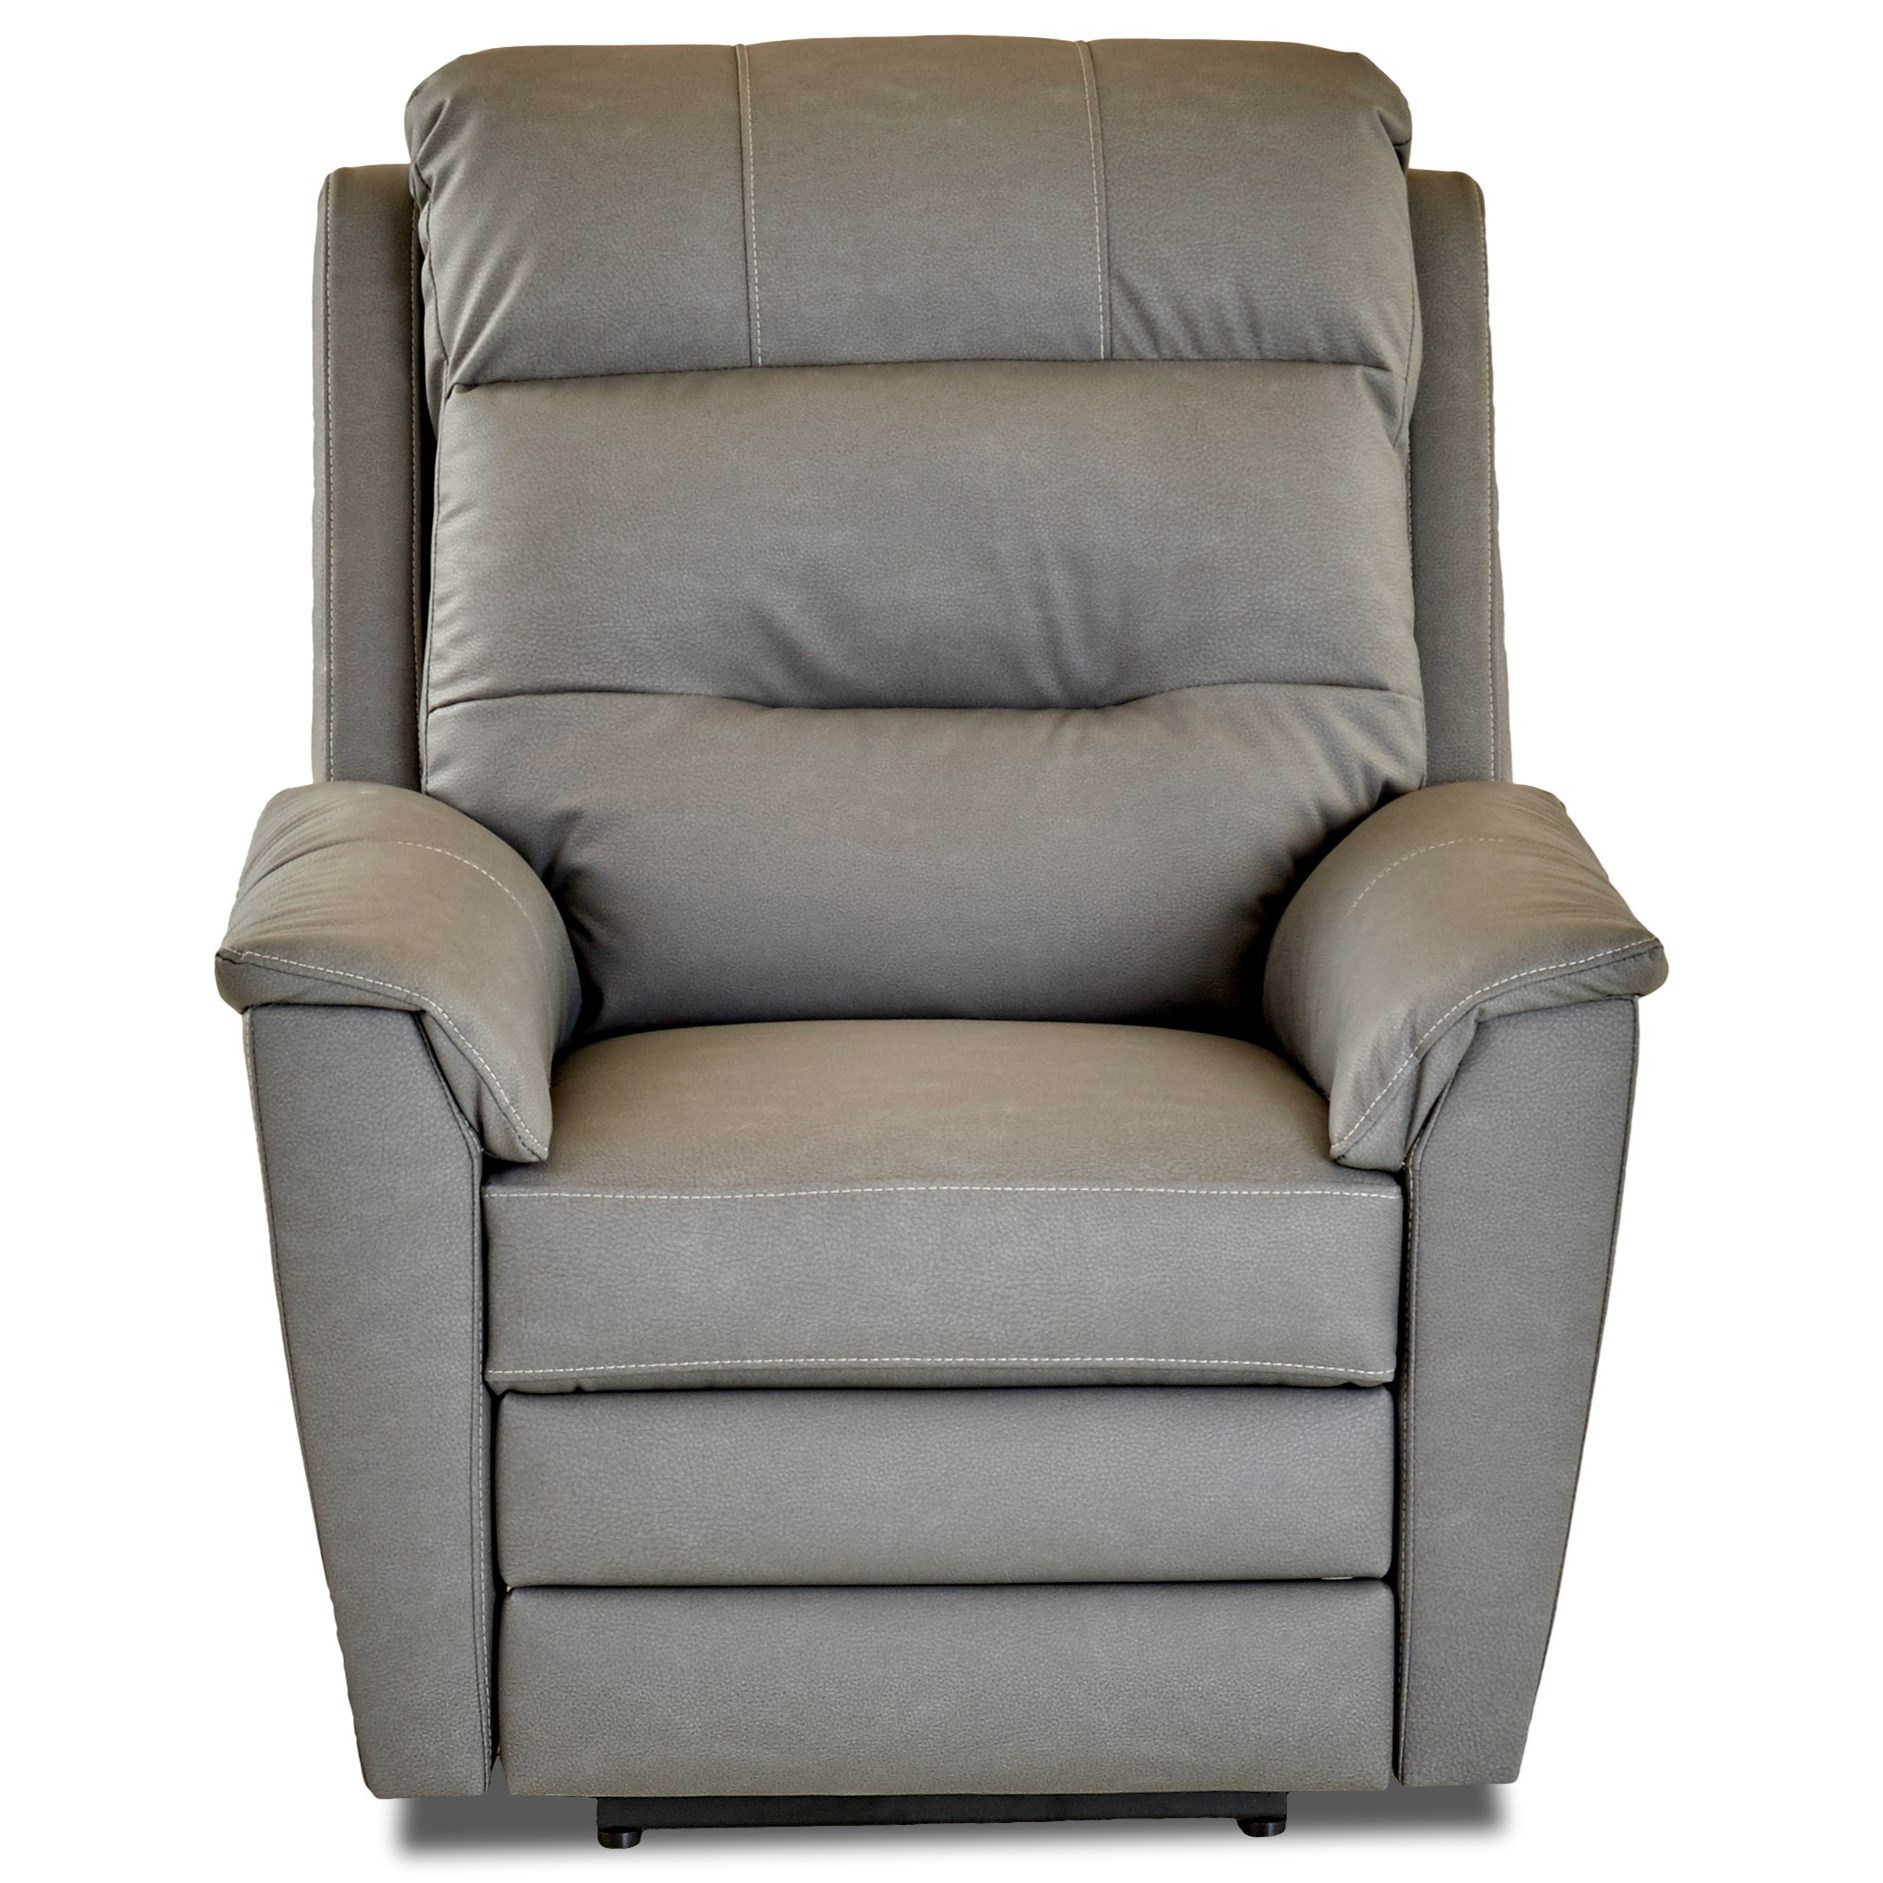 Klaussner Nola Pwr Rocking Recliner w/ Pwr Head and Lumbar - Item Number: 37343-8 PWRRC- Pompeii Lightgrey